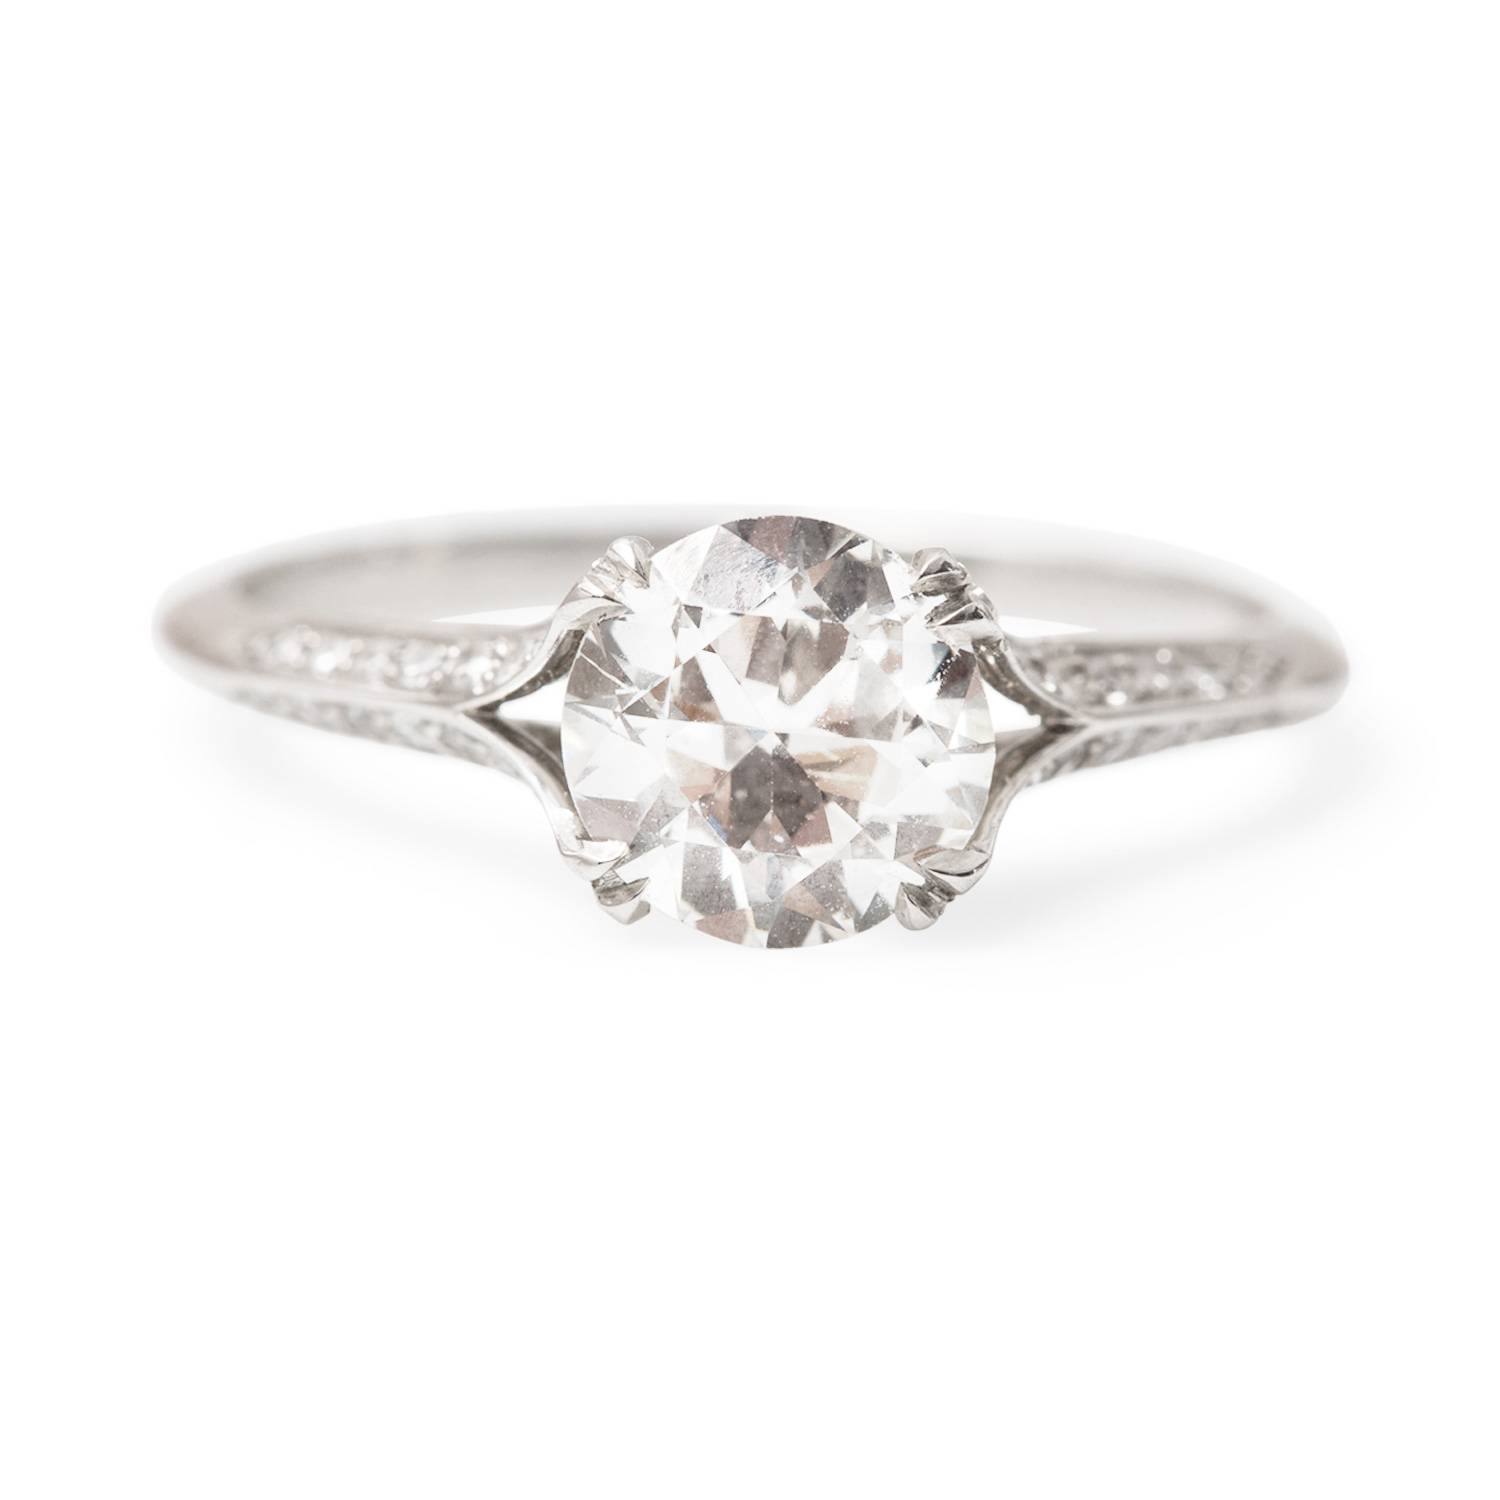 Engagement Rings – Wedding & Engagement – Catbird Pertaining To New Age Engagement Rings (View 5 of 15)